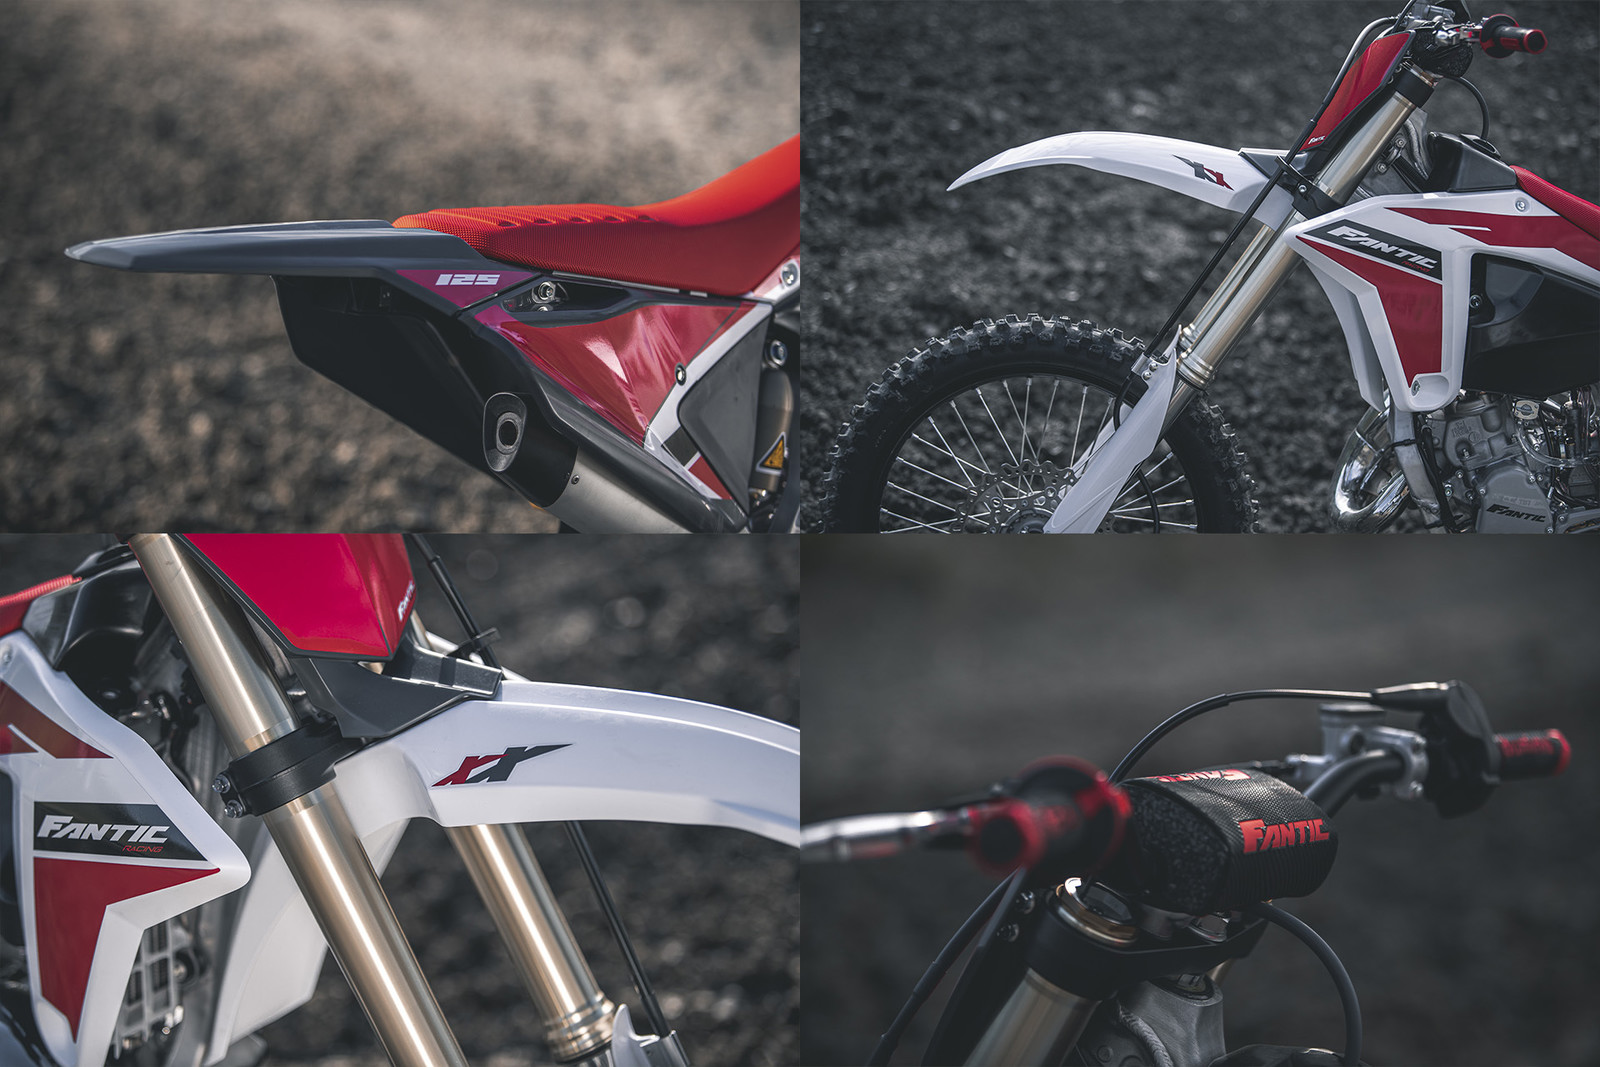 Fantic designed the plastics and seat on the XX 125.